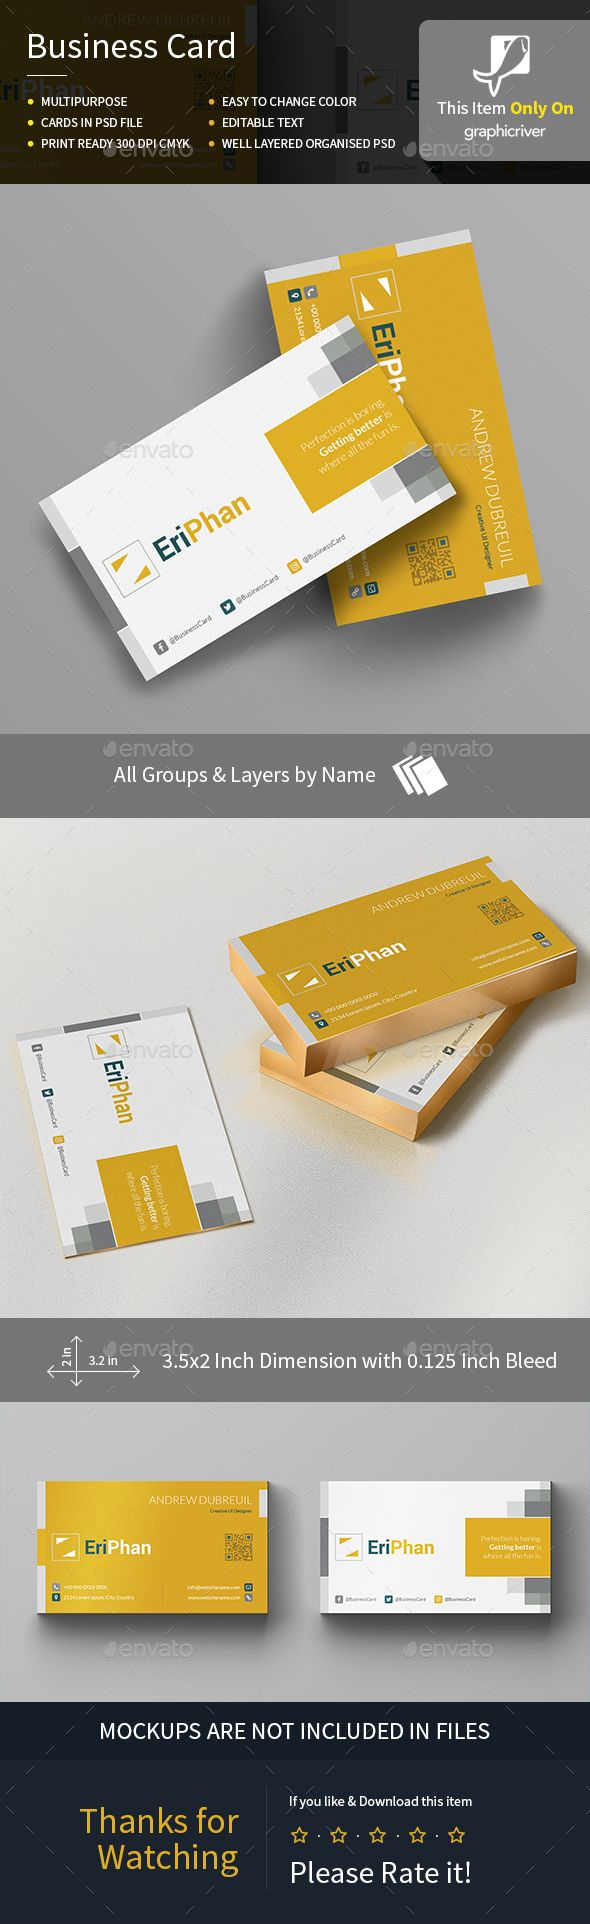 29 best business card design ispiration images on pinterest eriphan business card magicingreecefo Image collections